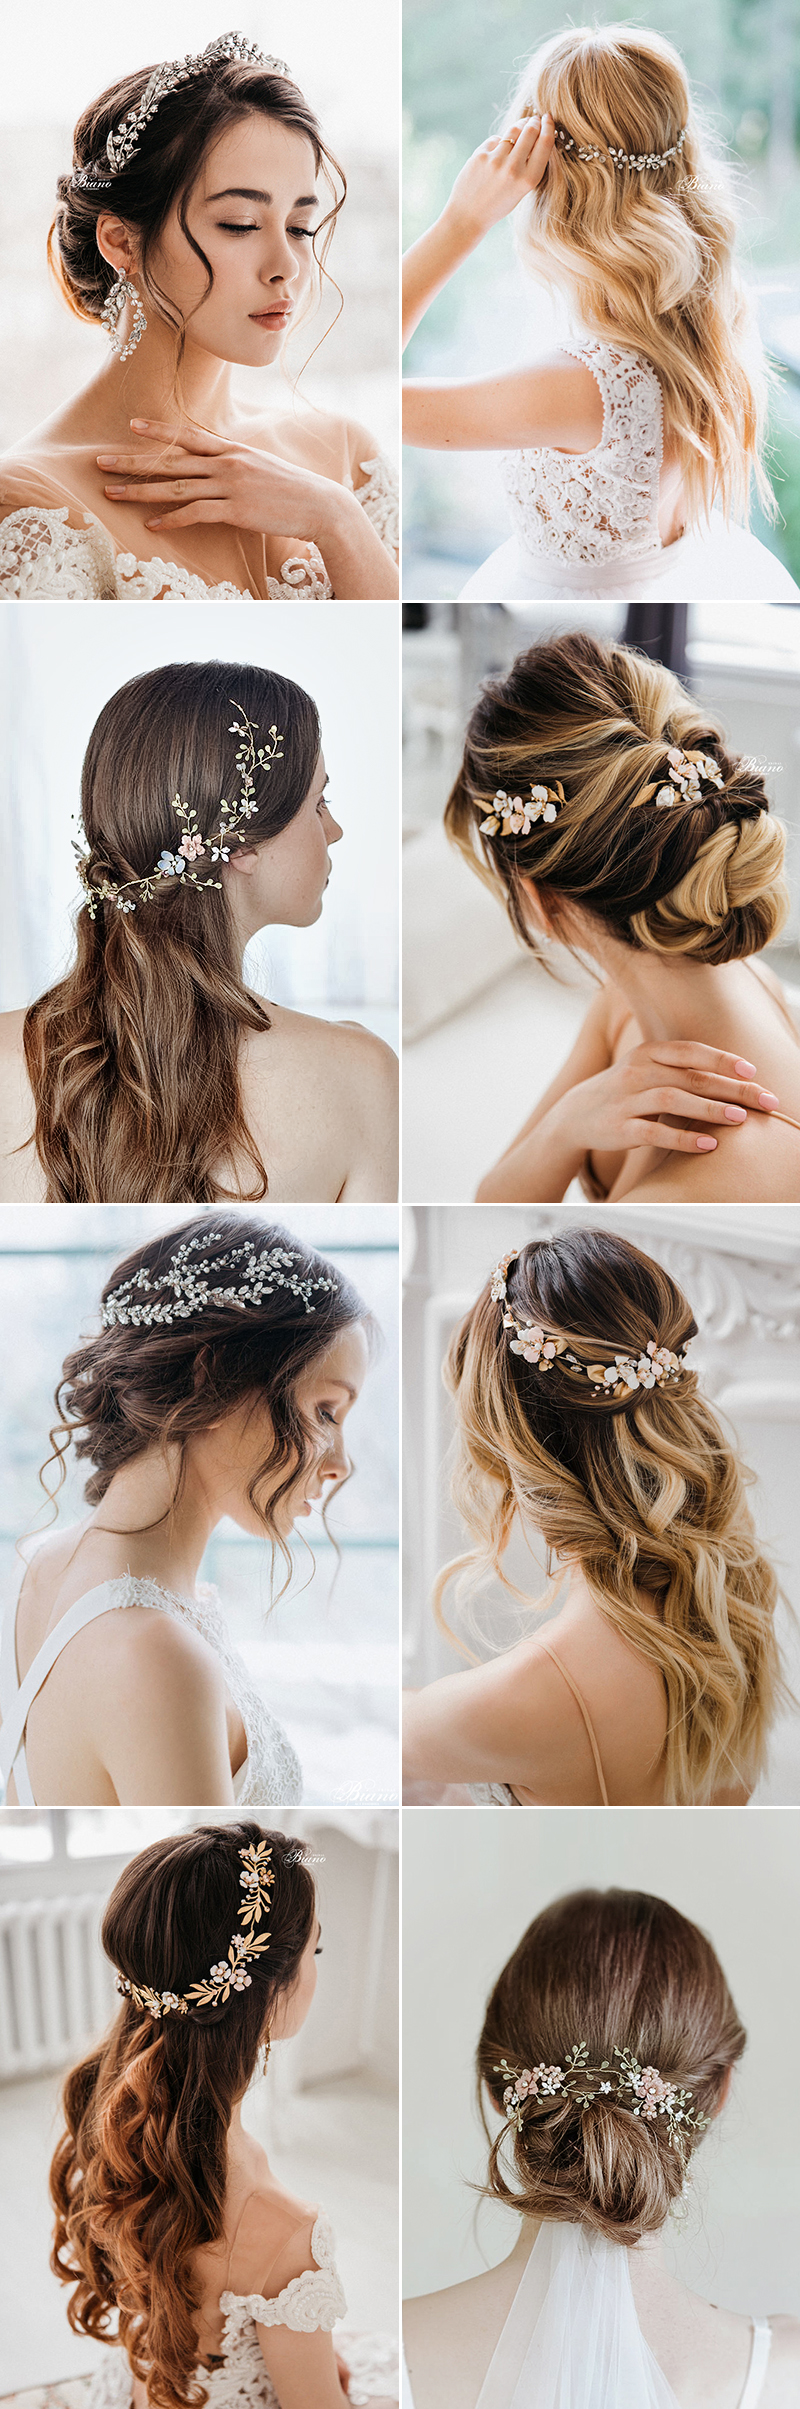 Praise wedding and family online shop - bridal accessories